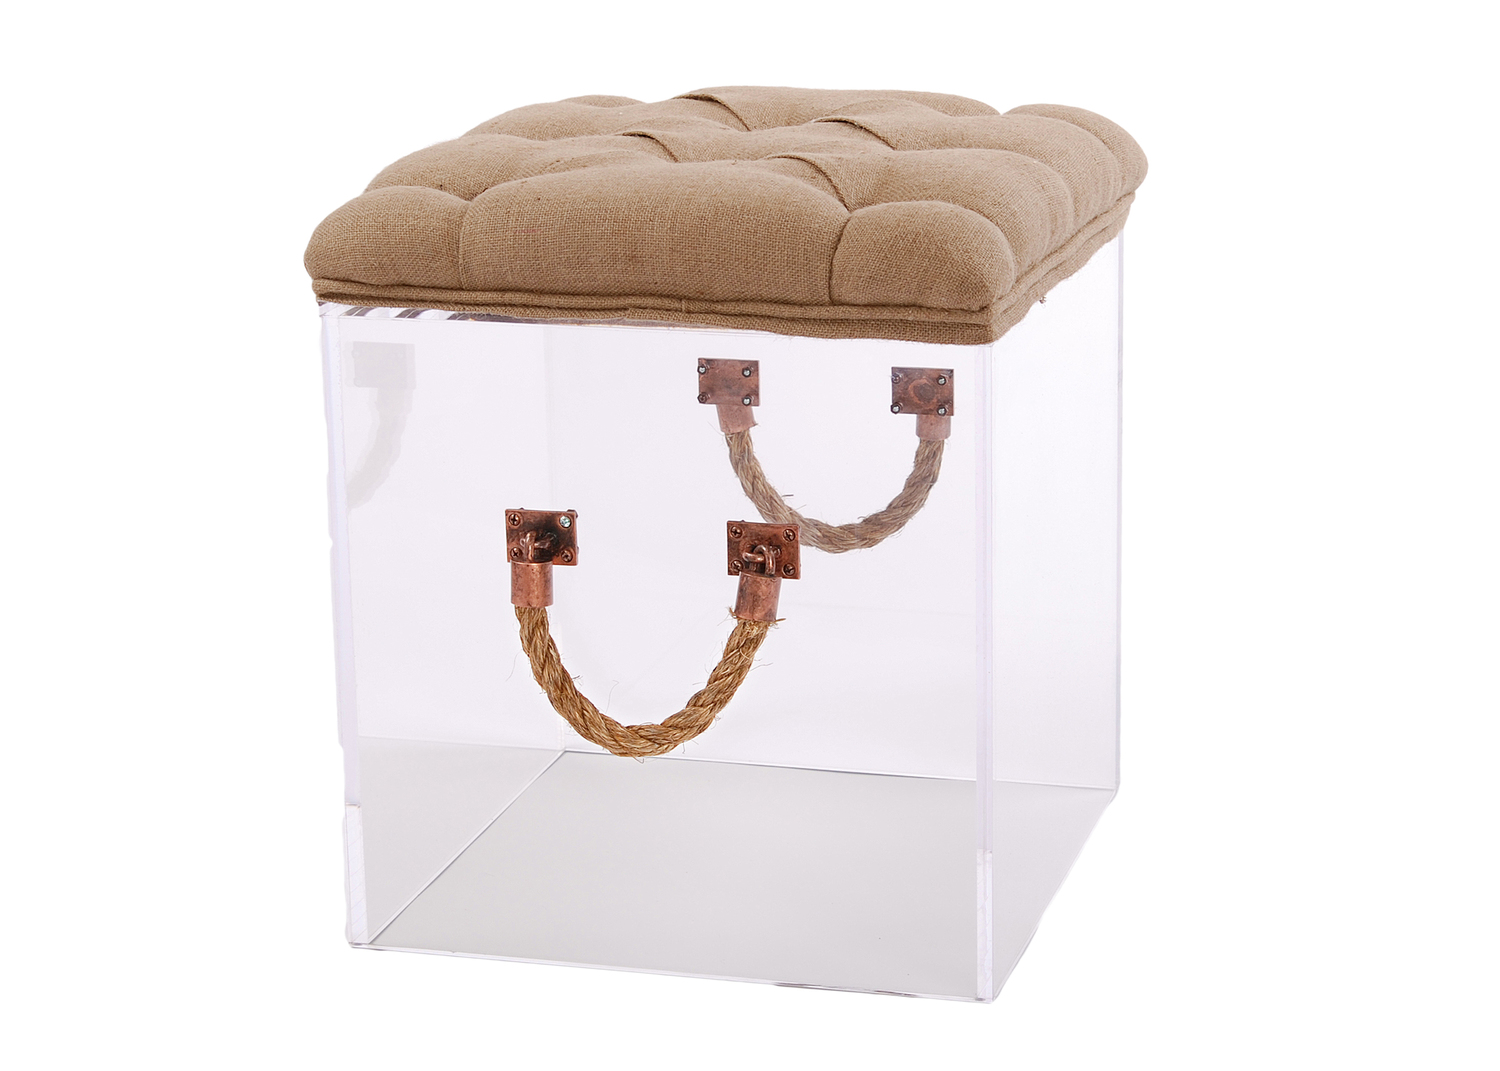 Bella Ottoman Stool With Nautical Handles Amp Cushion Donjenna